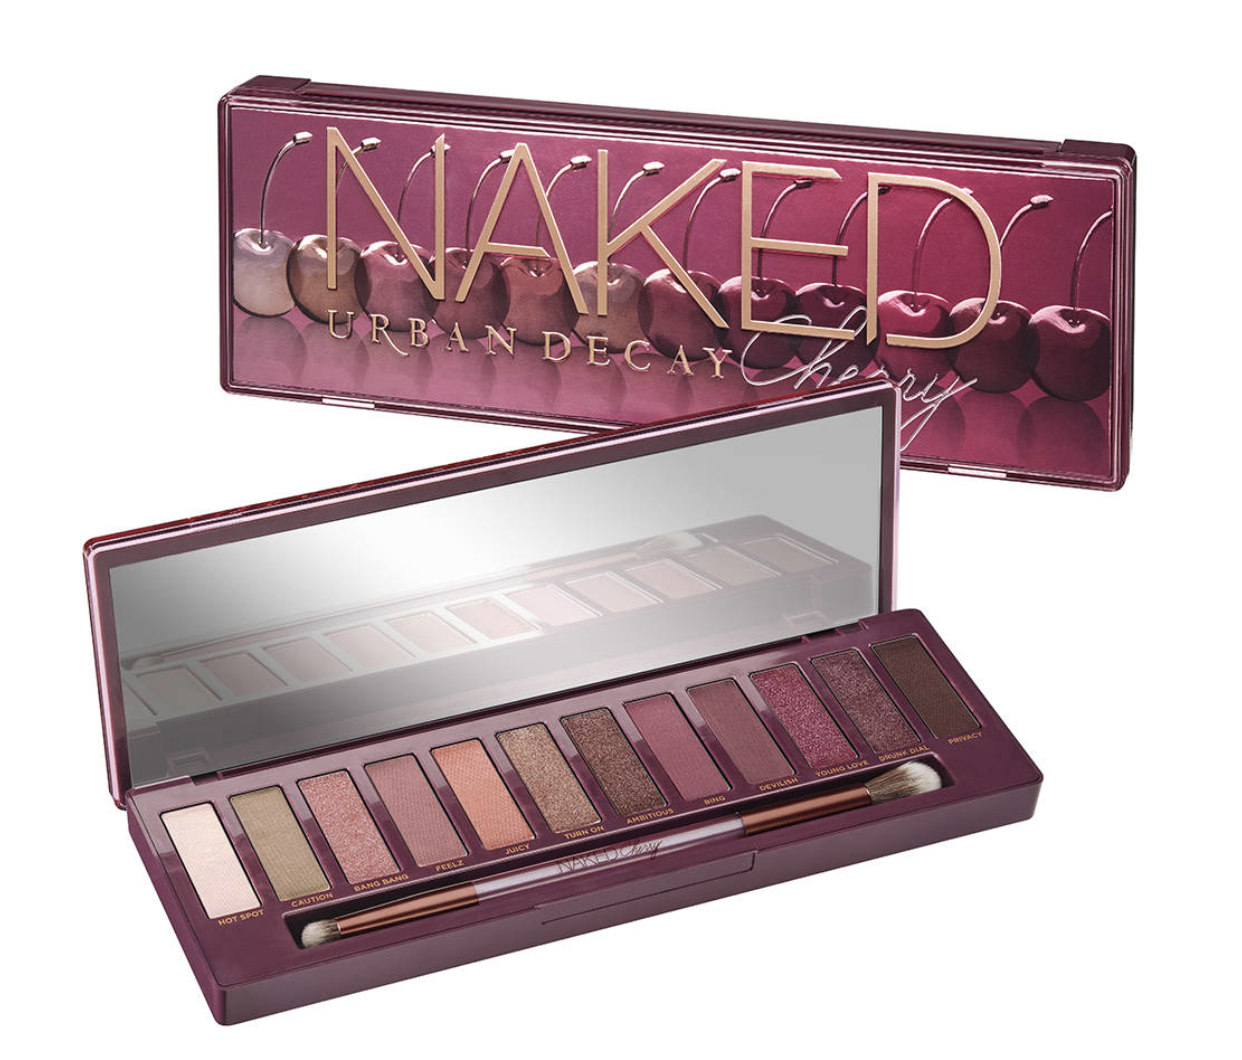 Naked Cherry Eyeshadow Palette   Urban Decay Cosmetics 2018-10-04 20-48-06.png